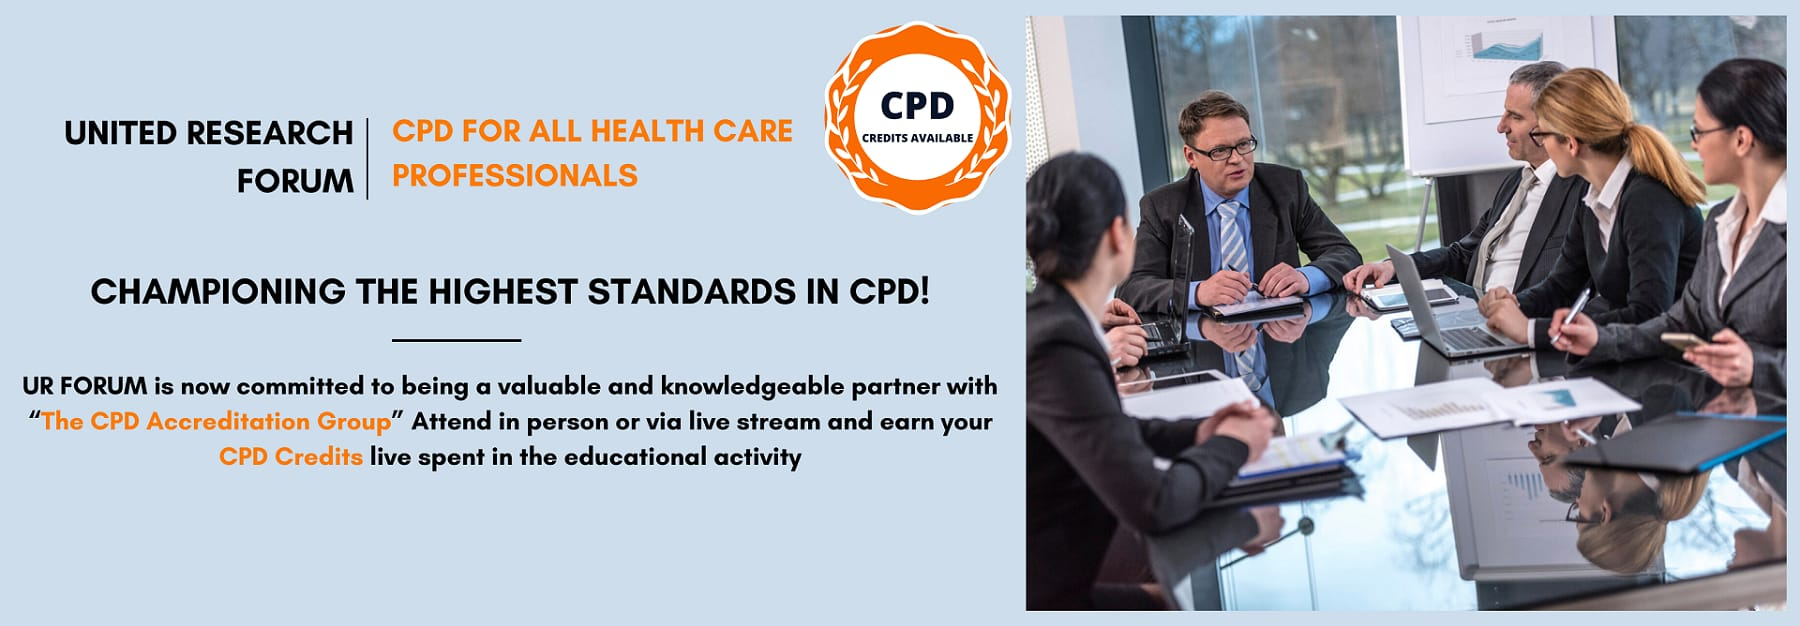 CME CPD CE Accredited